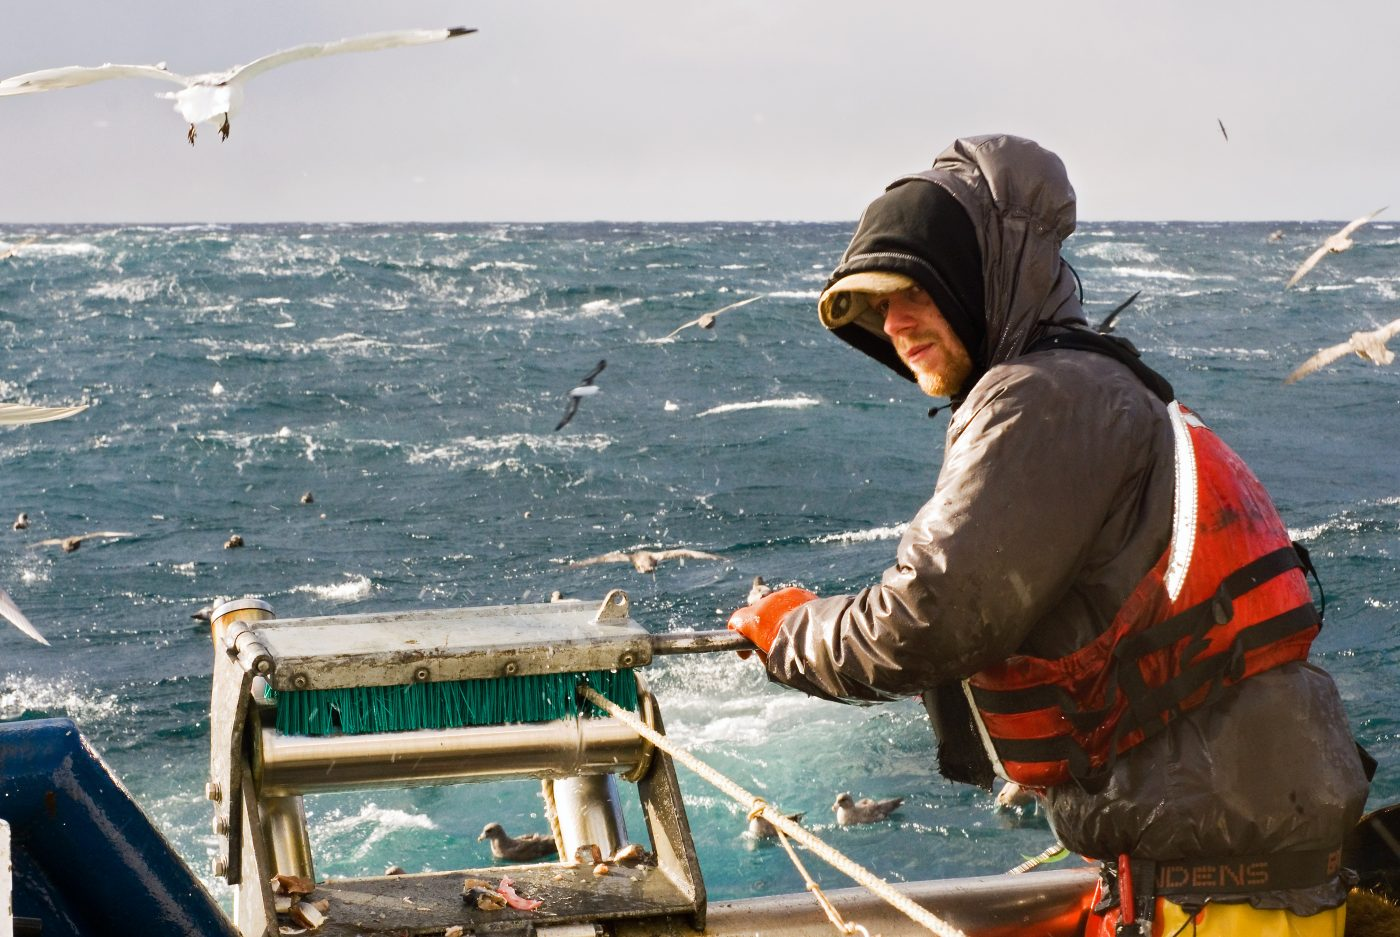 A commercial fisherman fishing for sablefish.